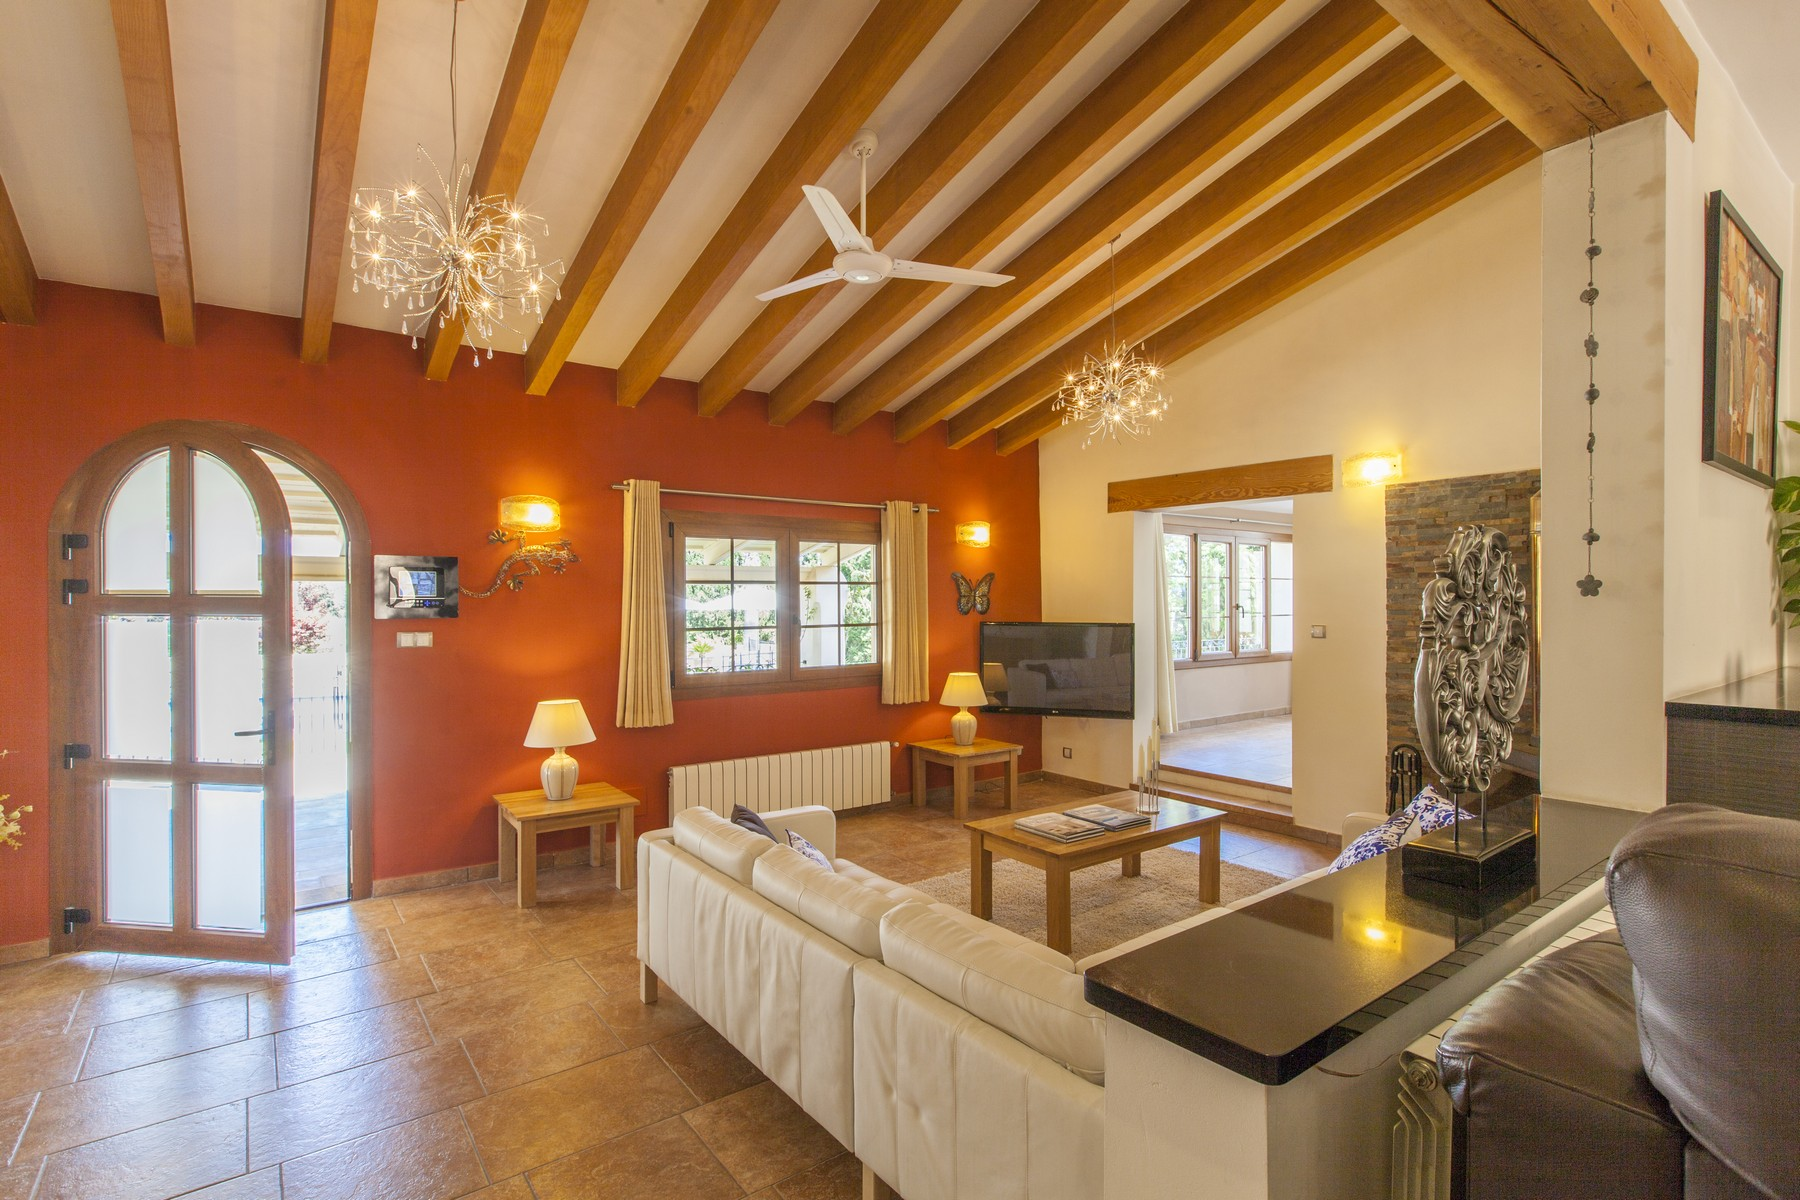 Single Family Home for Sale at Country Estate in Llubí with views Llubi, Mallorca 07001 Spain